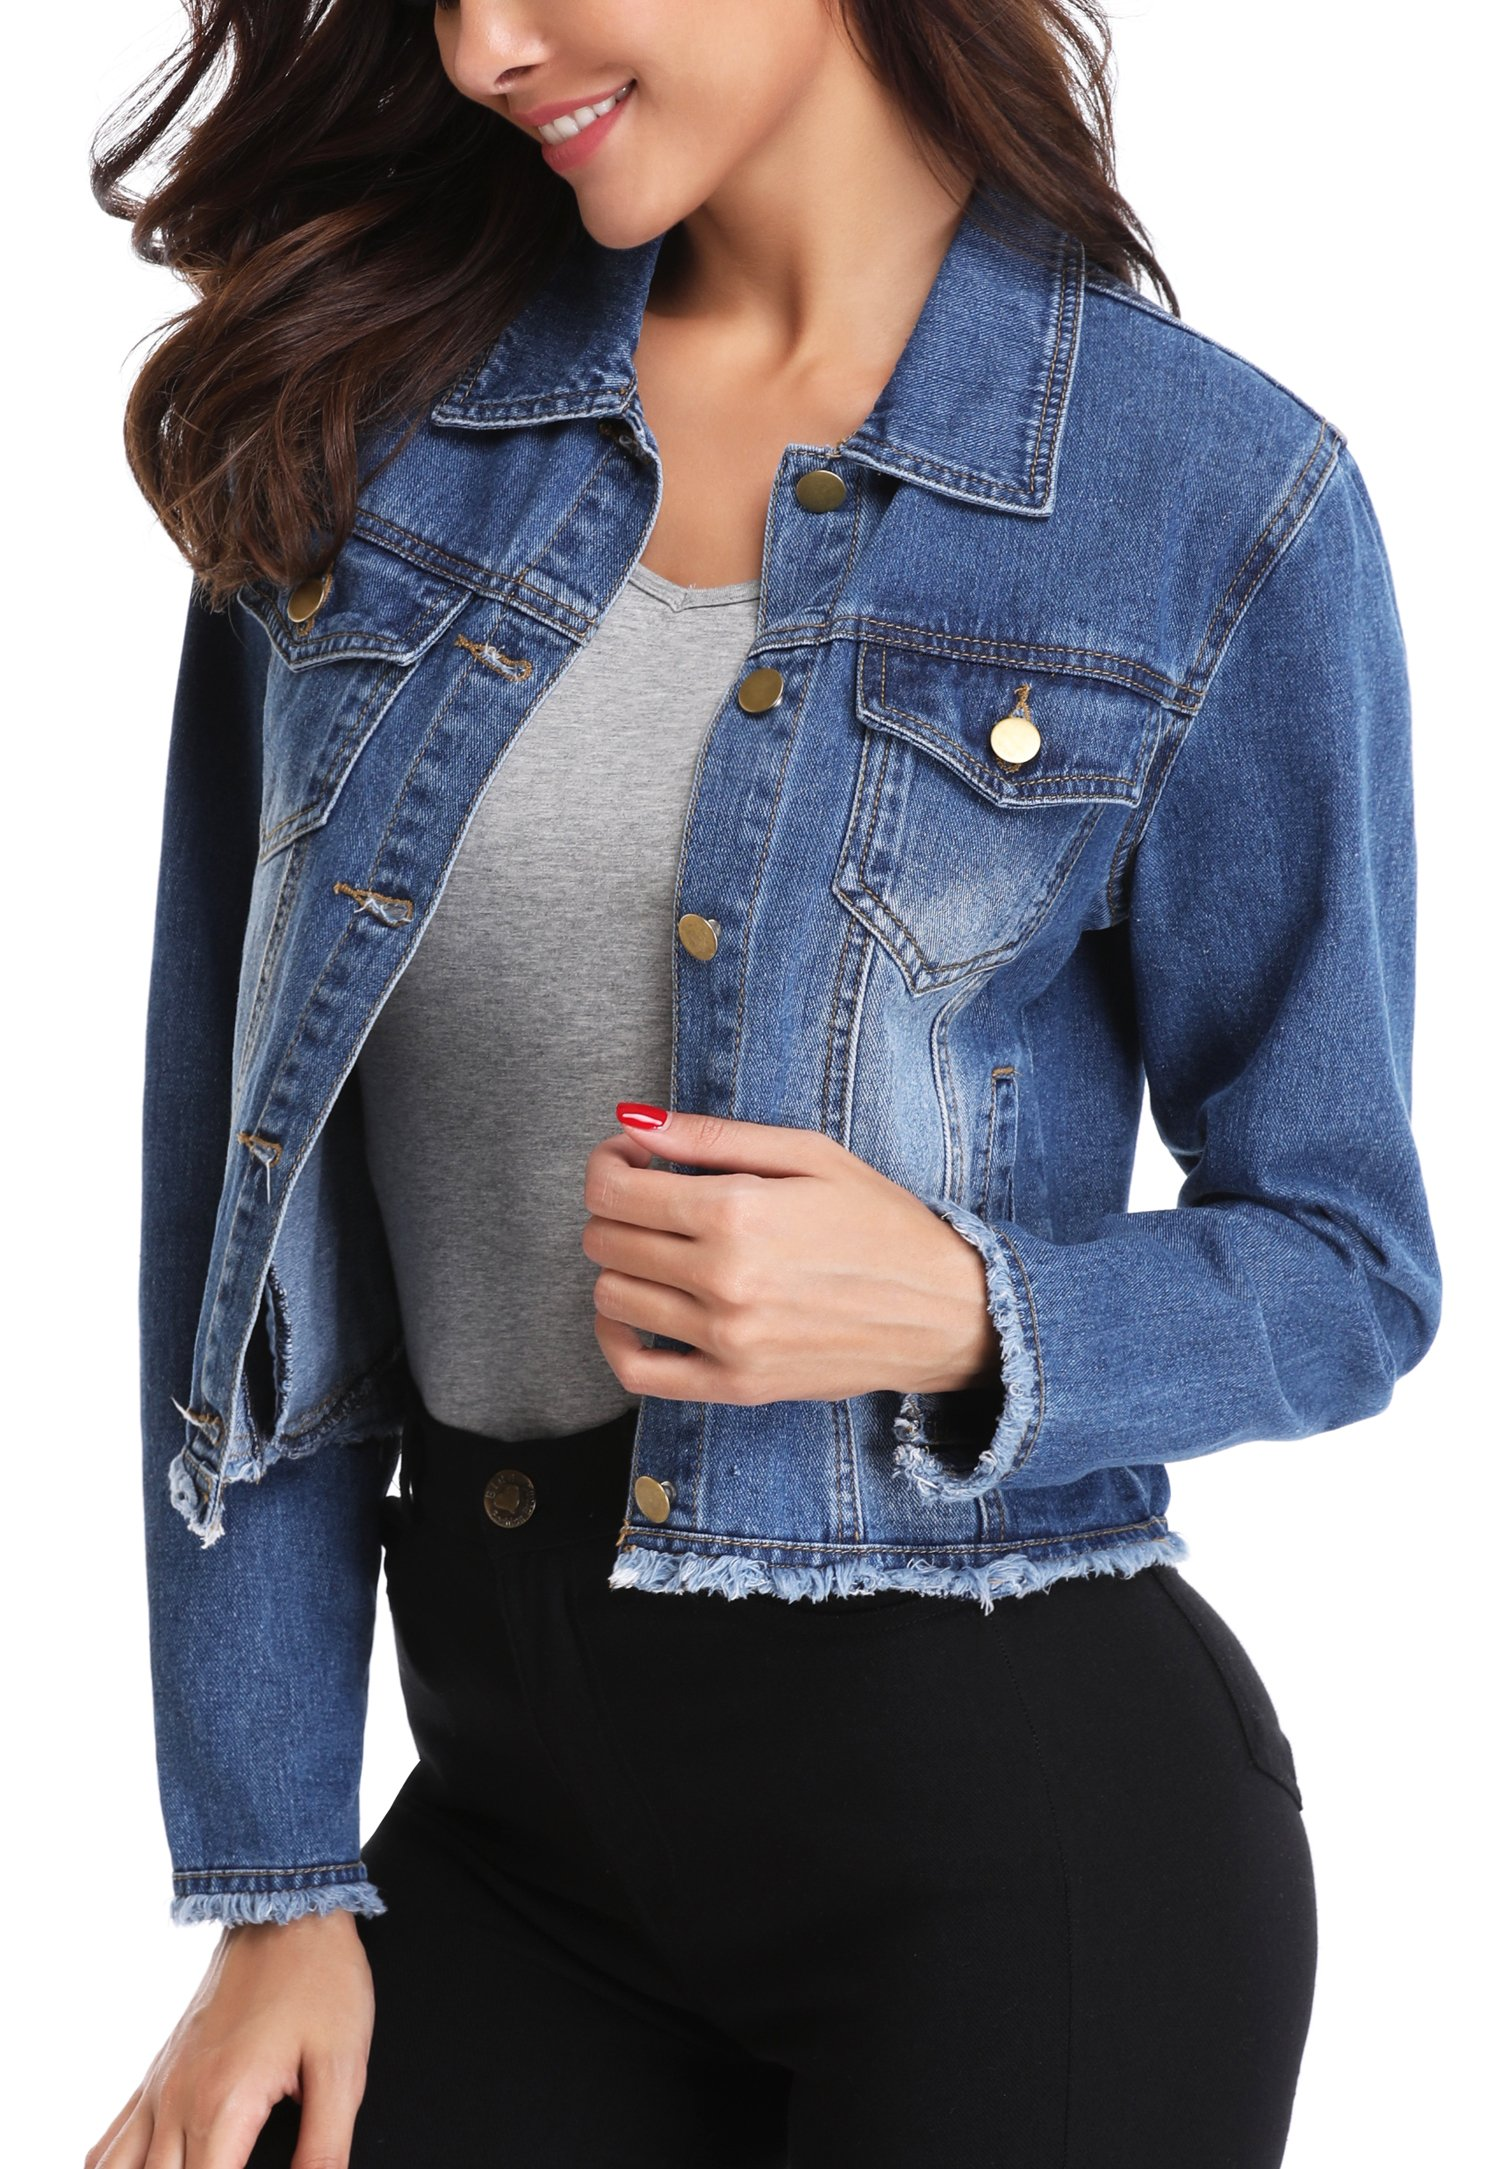 MISS MOLY Women's Vintage Ripped Btton up Western Pockets Cropped Washed Denim Jean Jacket Coat Blue XS